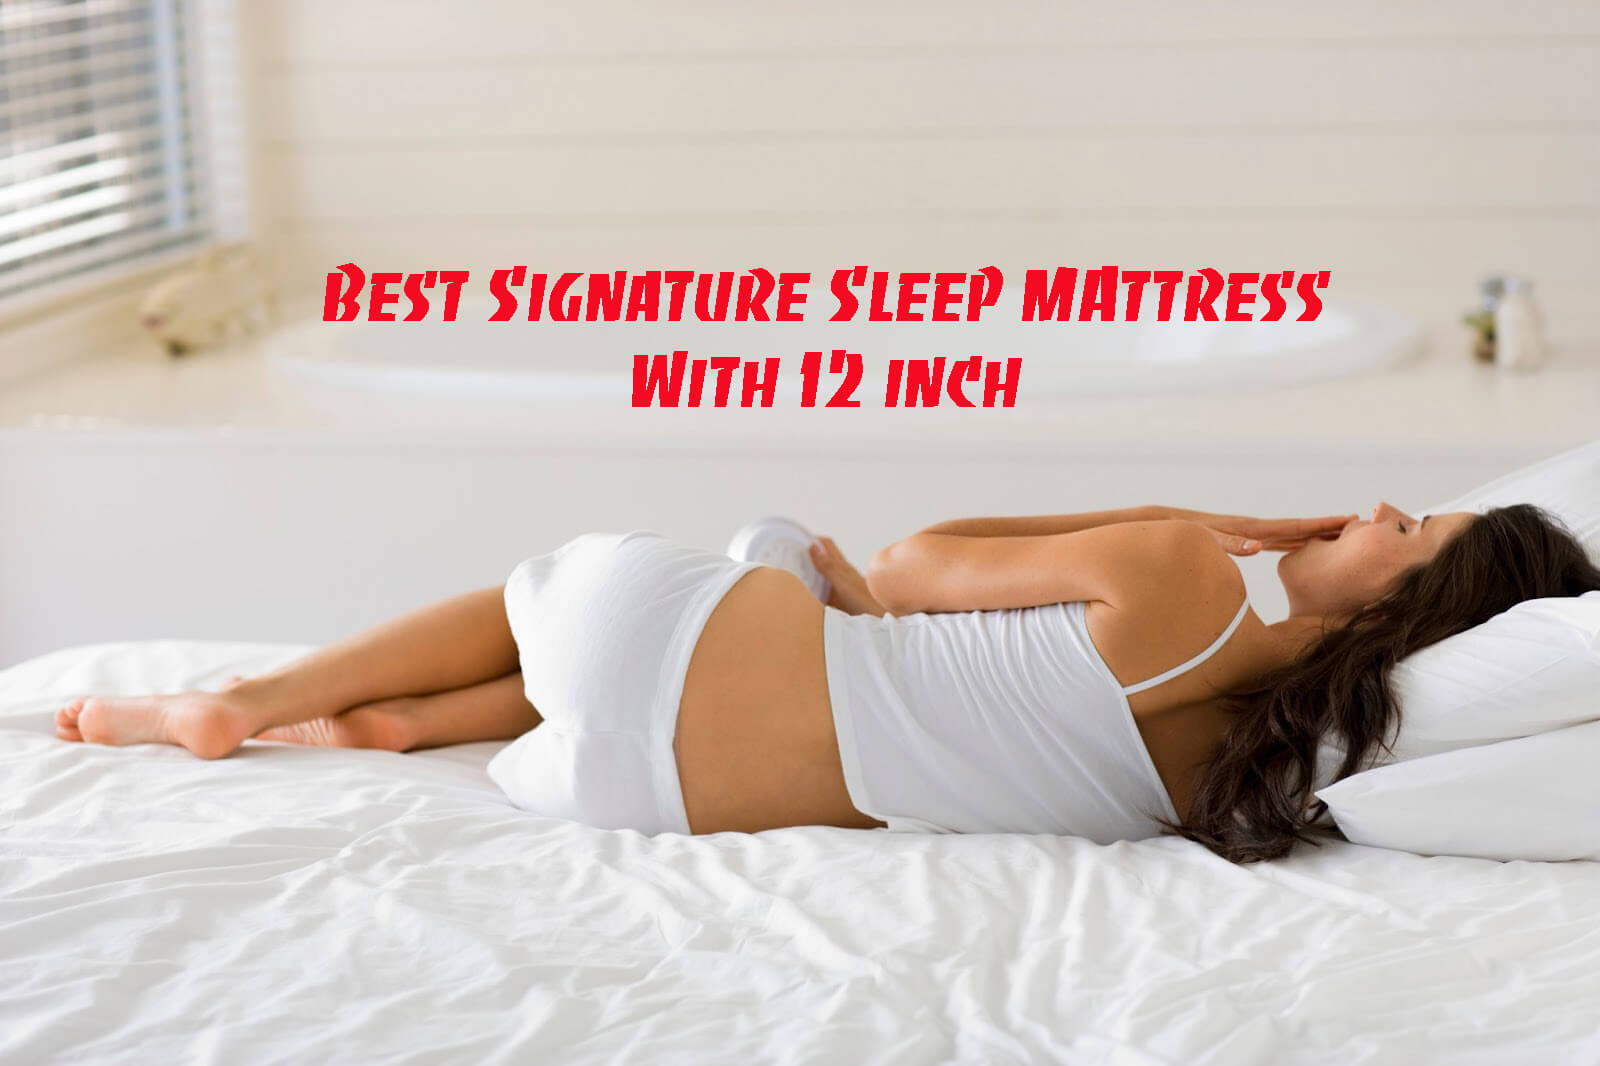 Signature Sleep Memoir 12 inch Memory Foam Mattress